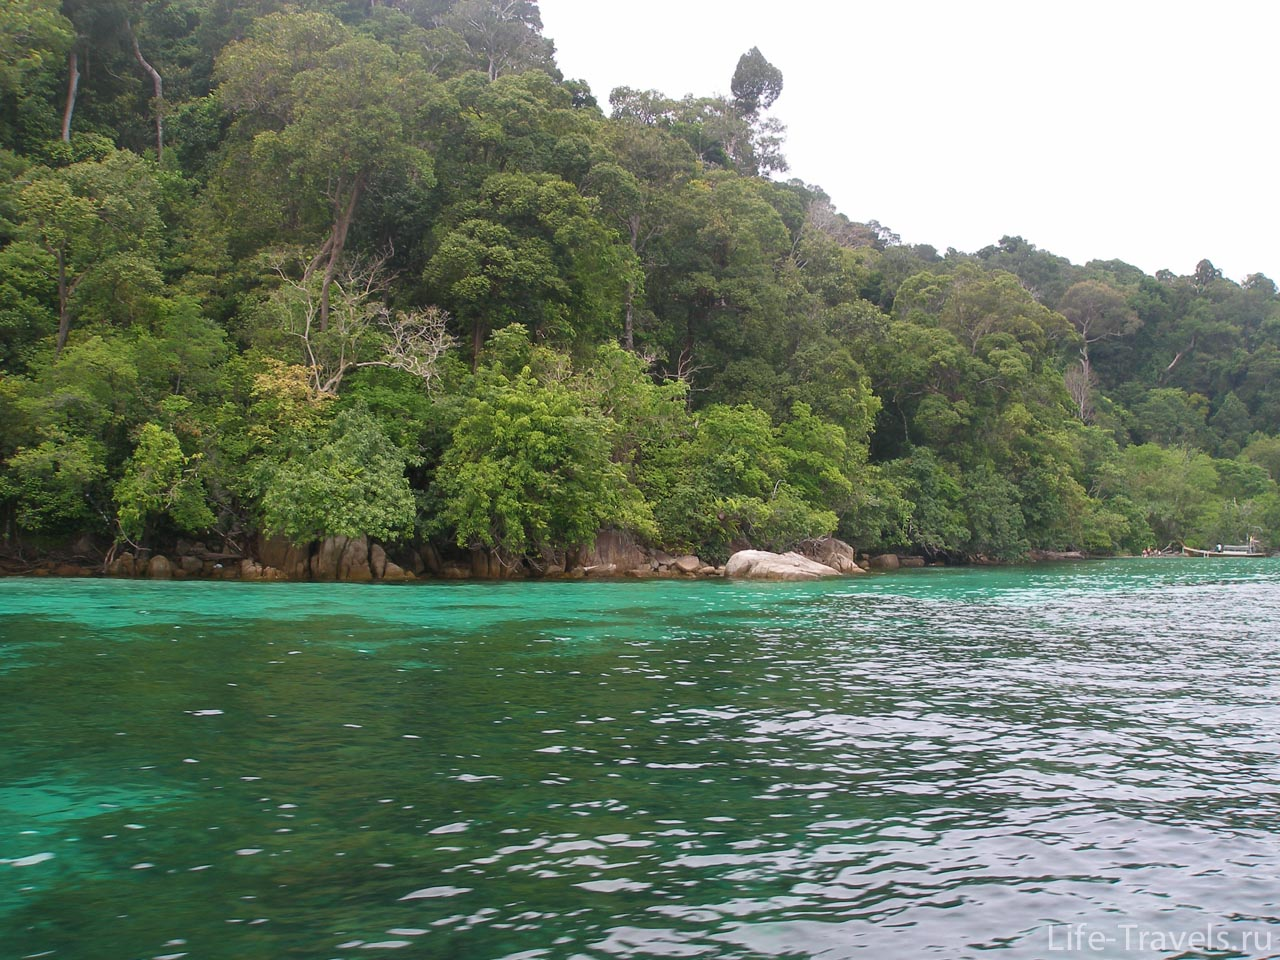 Green Island in the Andaman Sea